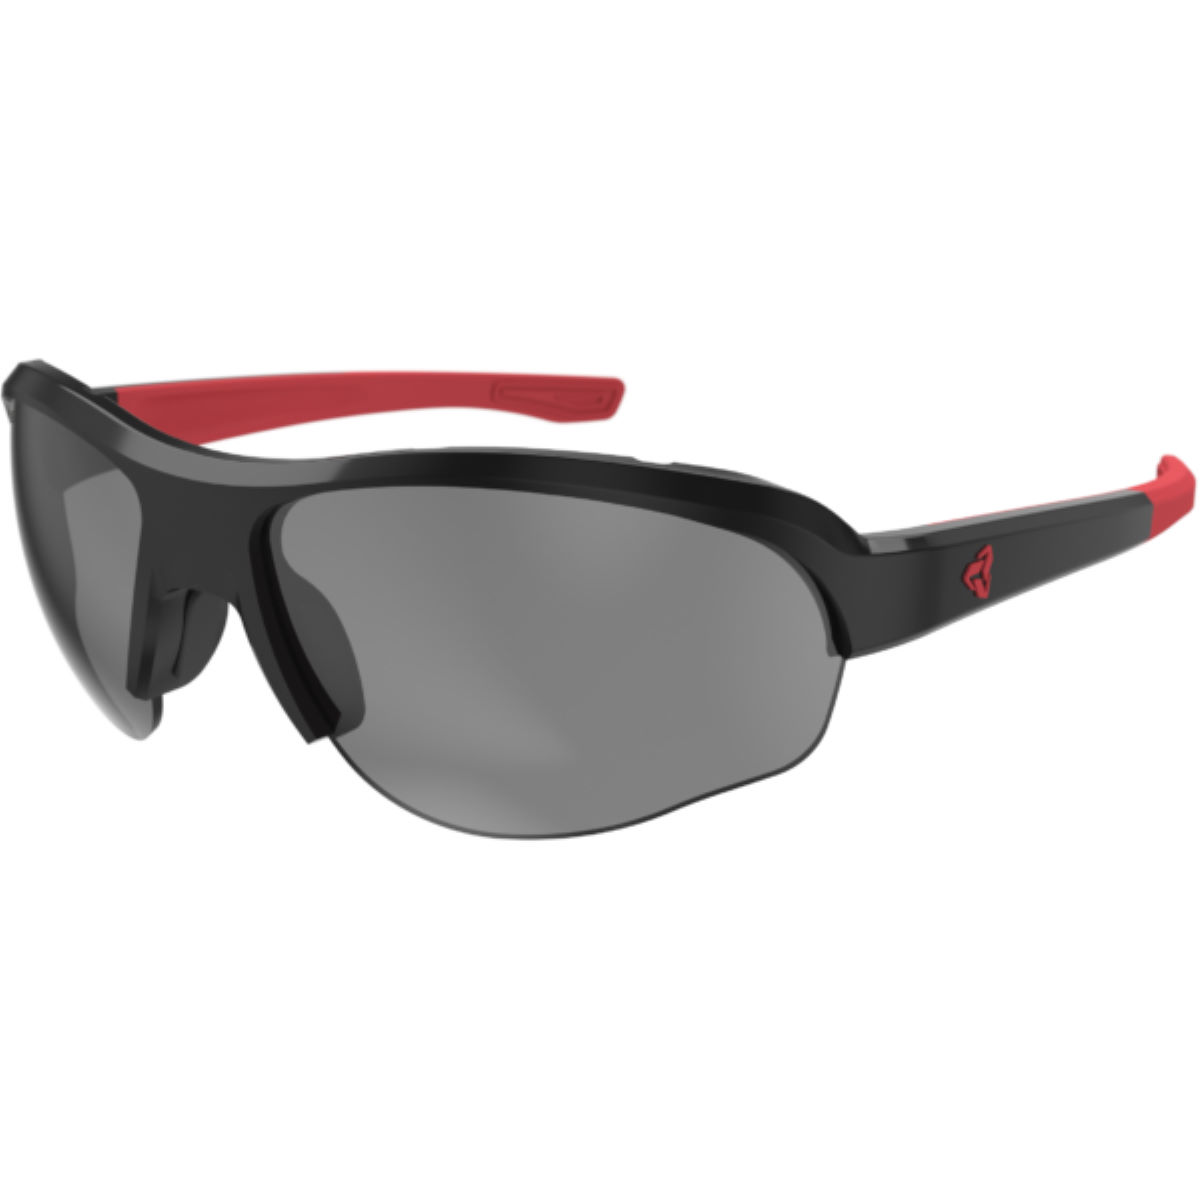 Ryders Eyewear Flume Poly Anti-Fog Lens Sunglasses   Sunglasses